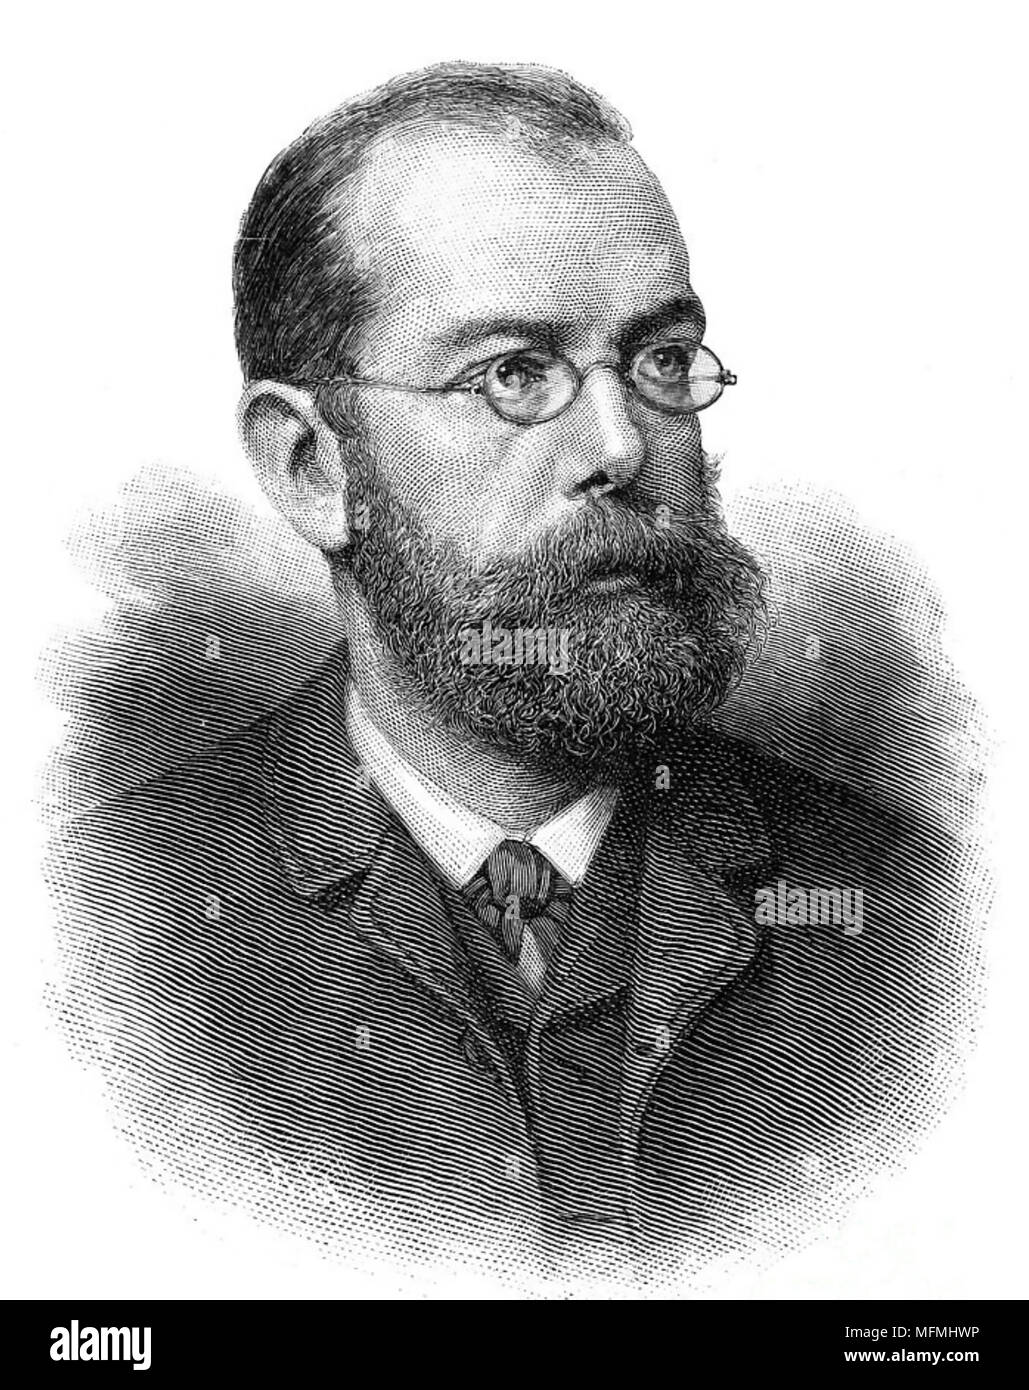 ROBERT KOCH (1843-1910) German physician and microbiologist - Stock Image